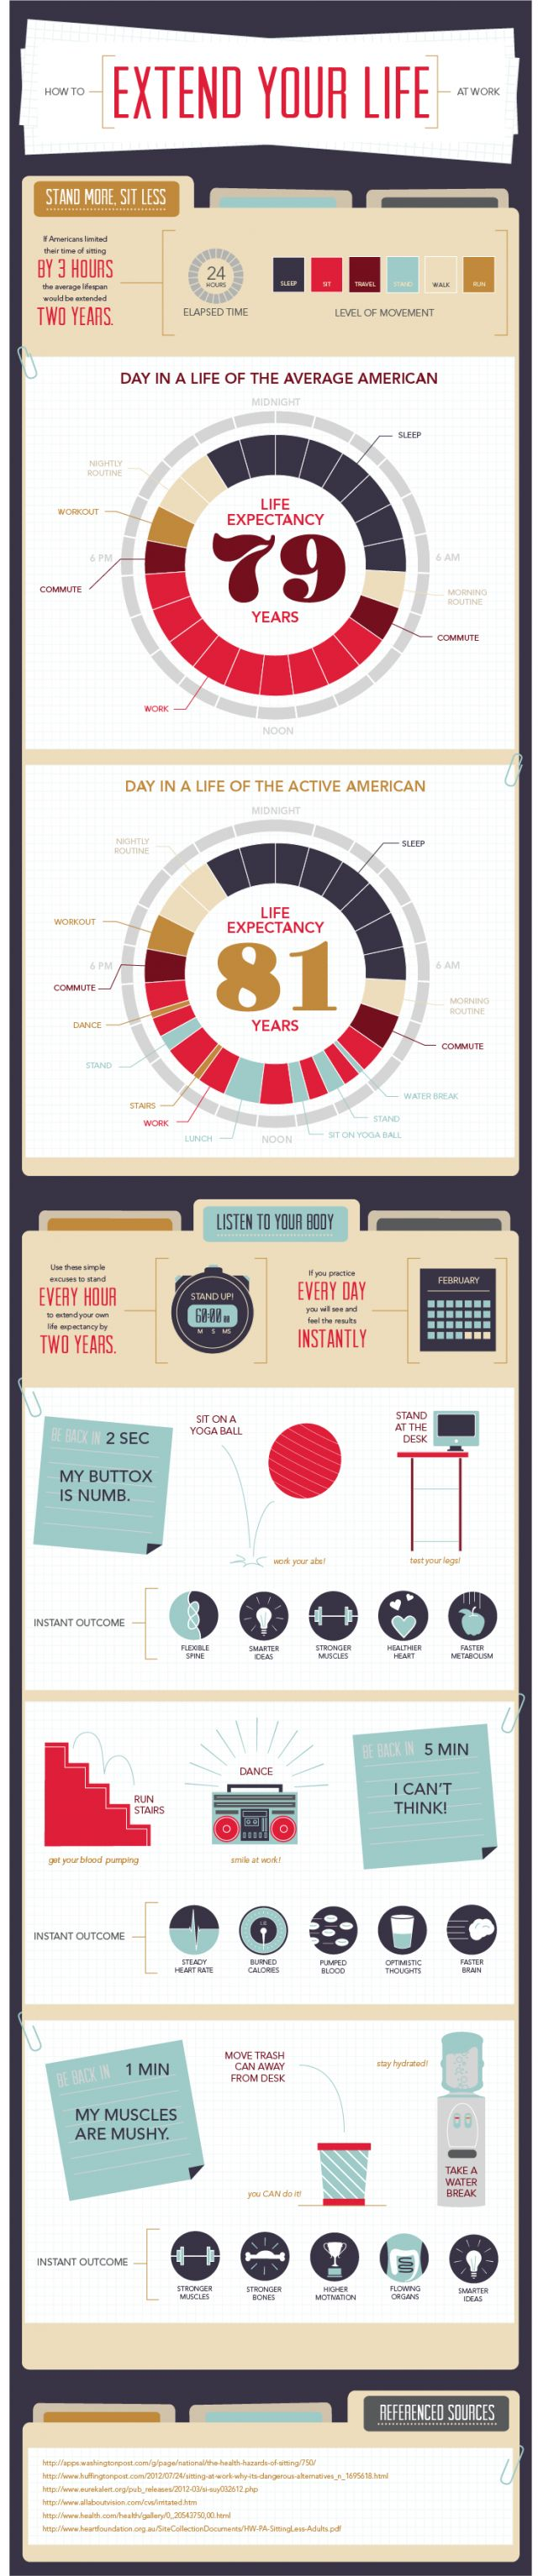 How To Extend Your Life At Work [Infographic] - Daily Infographic